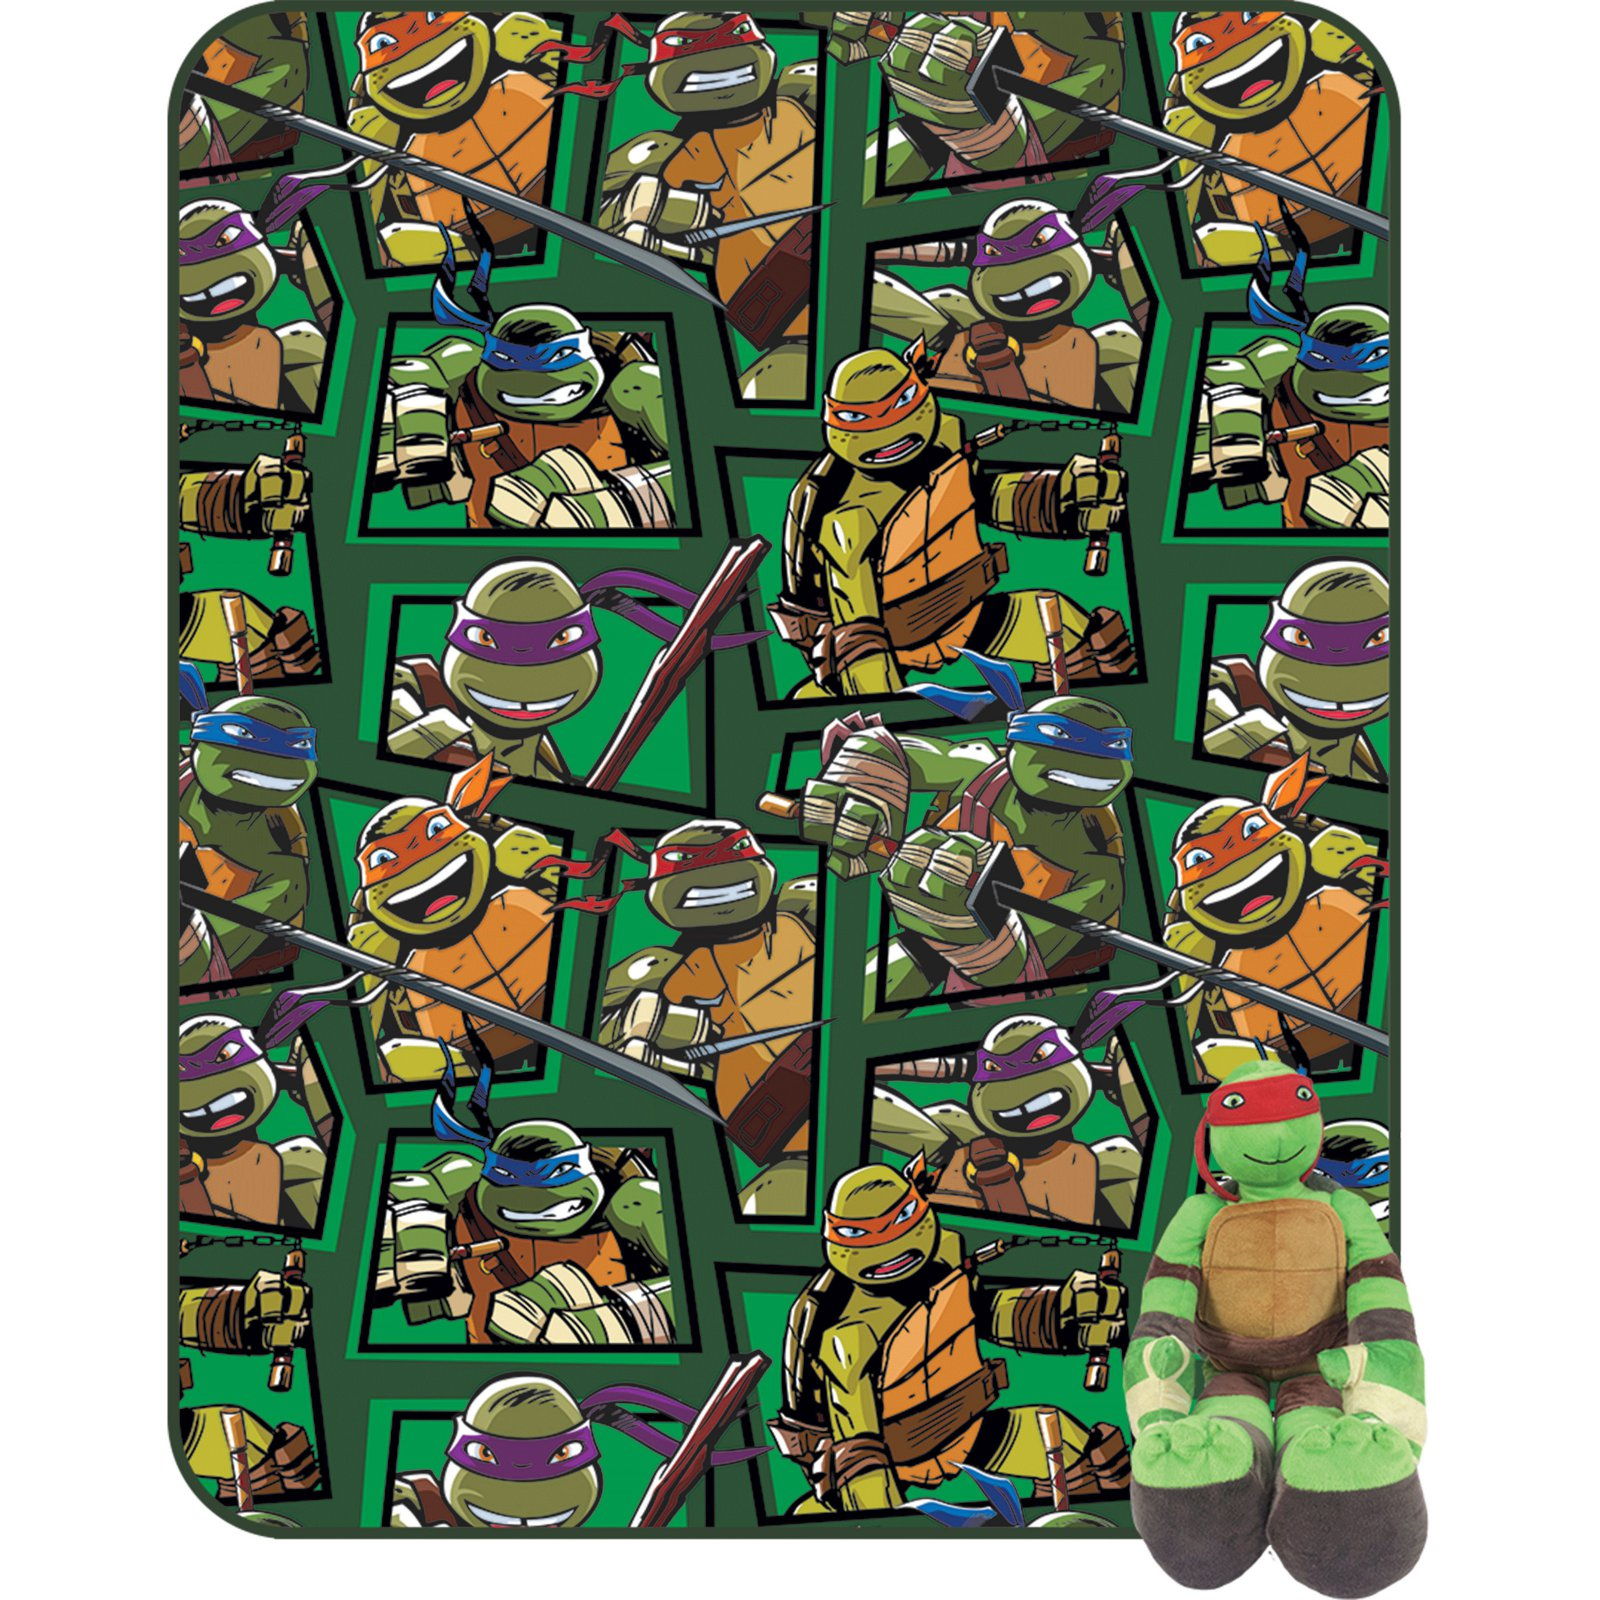 Teenage Mutant Ninja Turtles Twin Blanket with Pillow Buddy by Nickelodeon